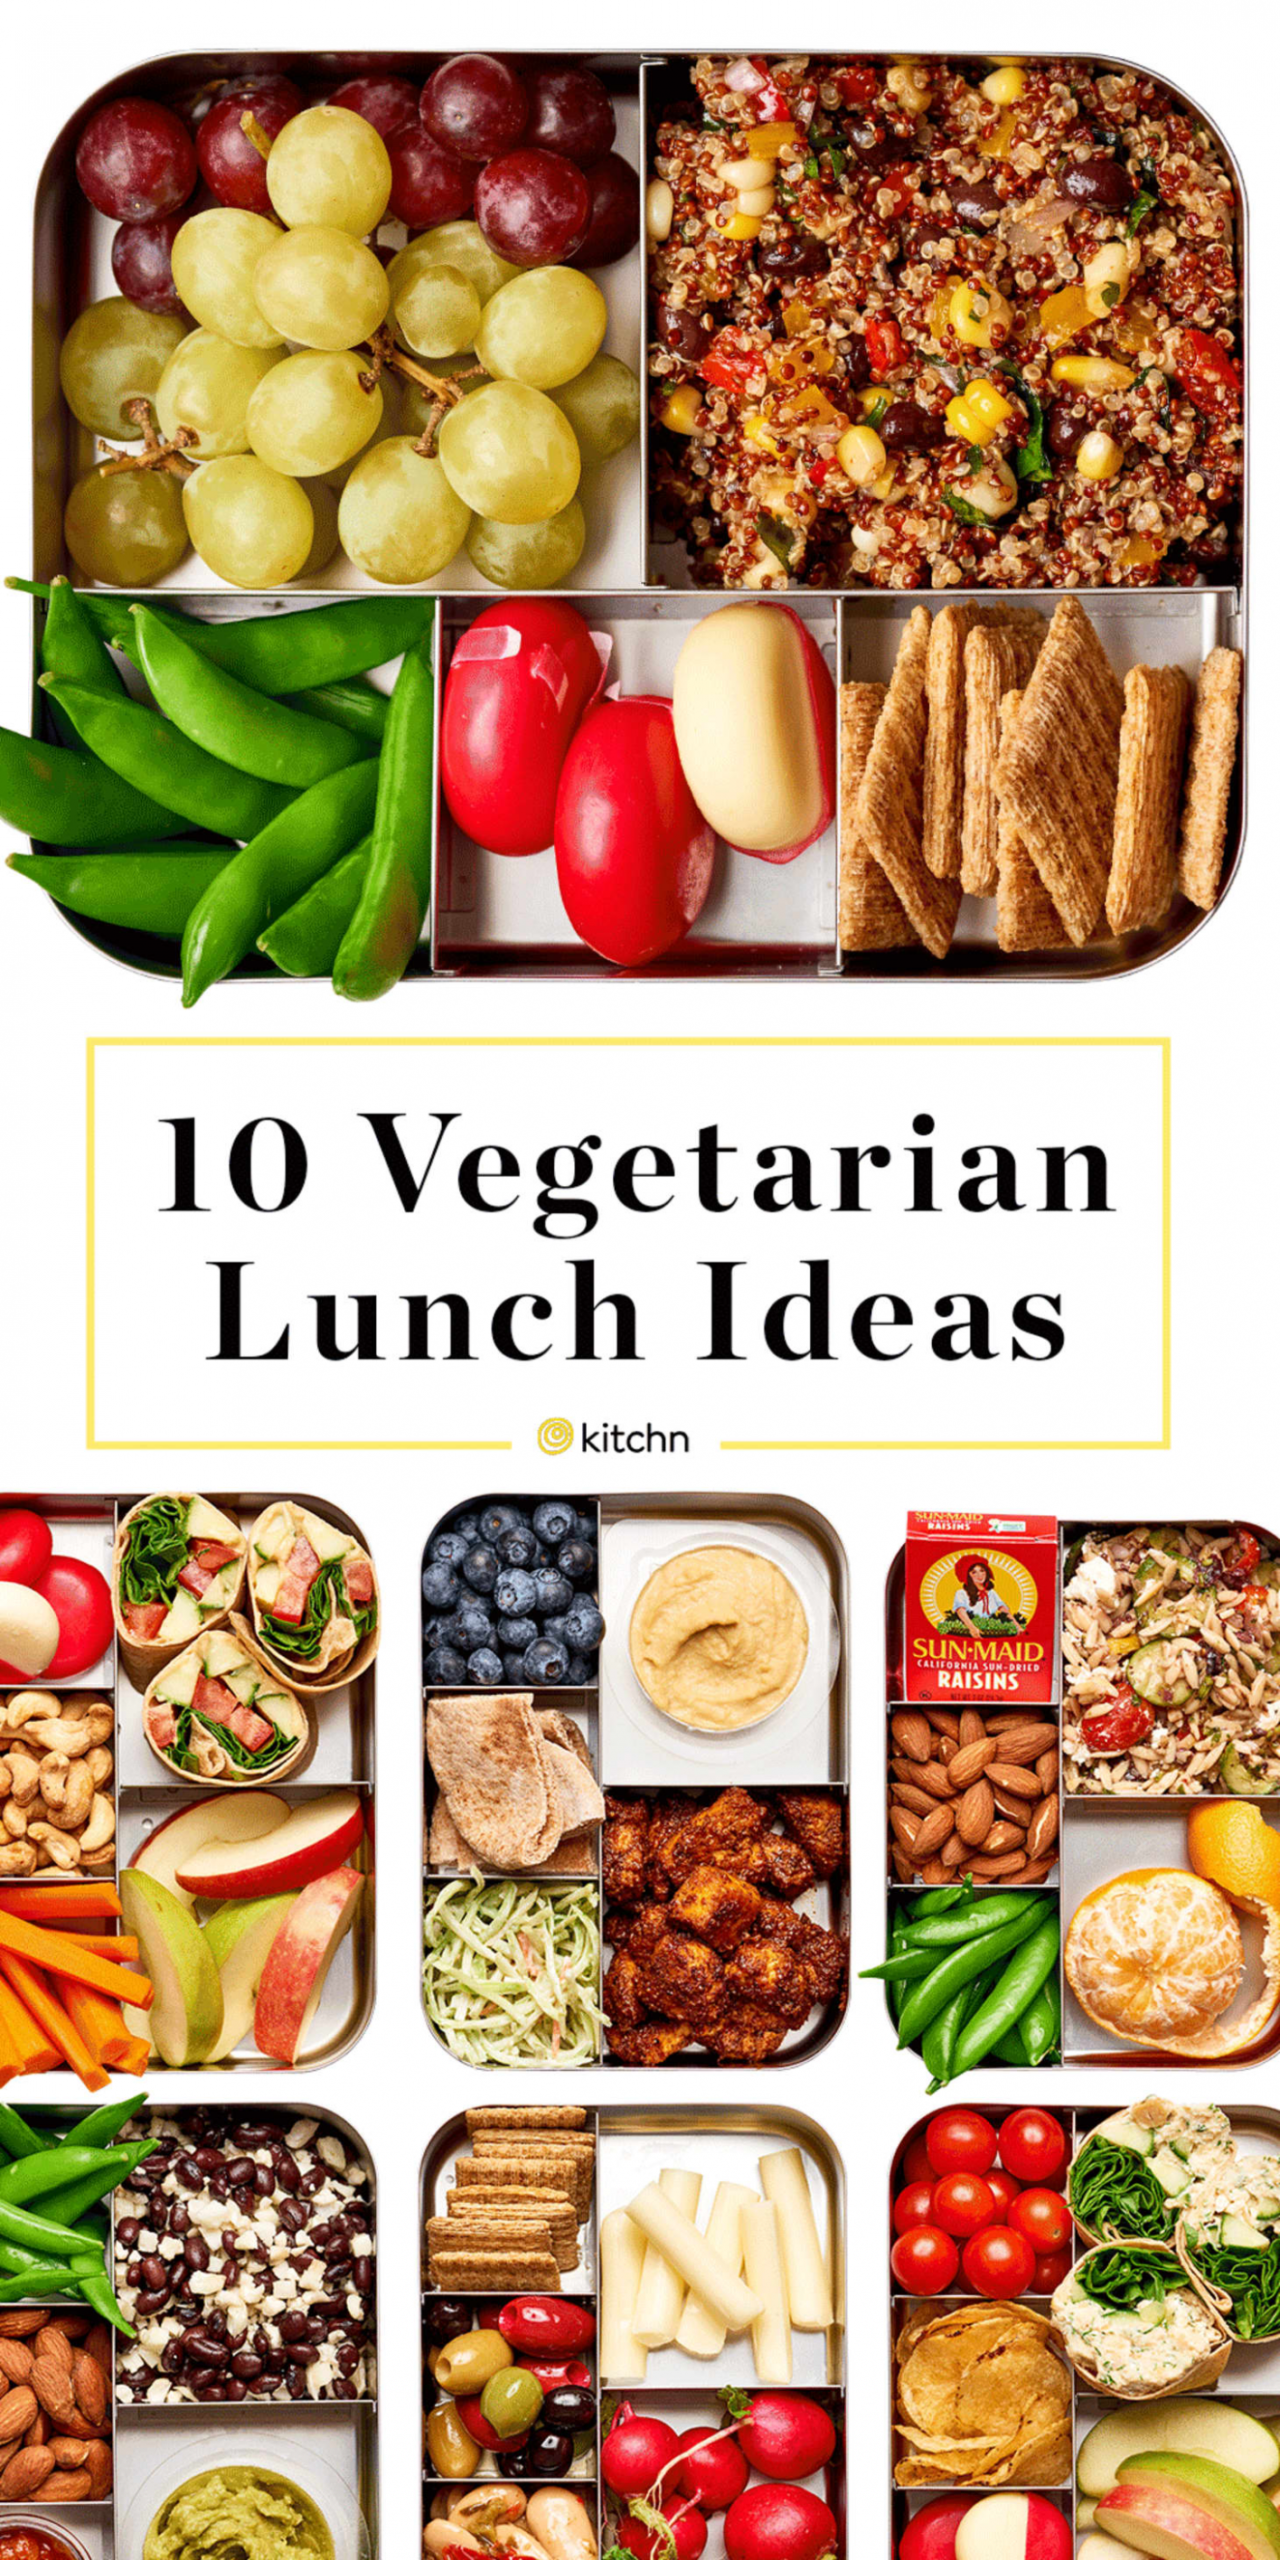 Easy Vegetarian Lunch Ideas | Kitchn - quick lunch recipes vegetarian